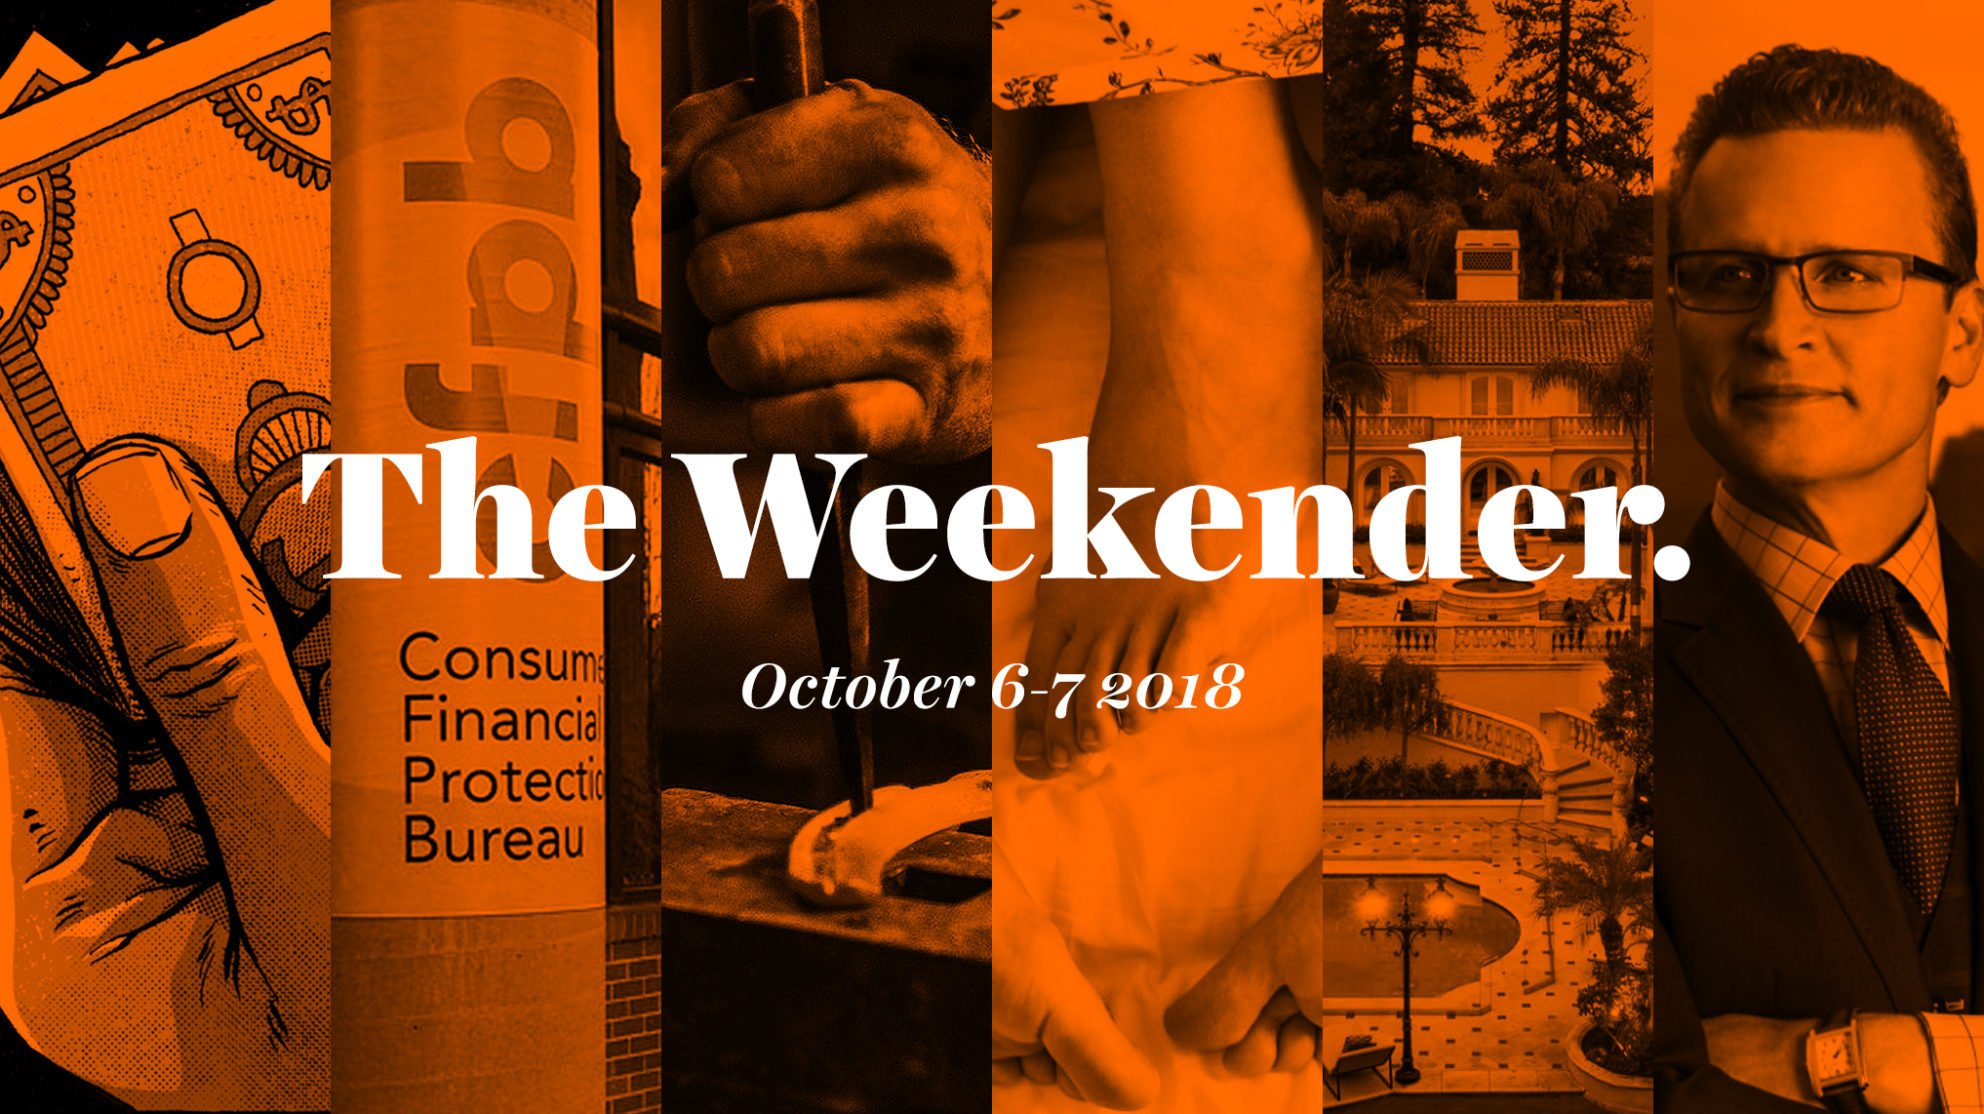 The Inman Weekender, October 6-7, 2018